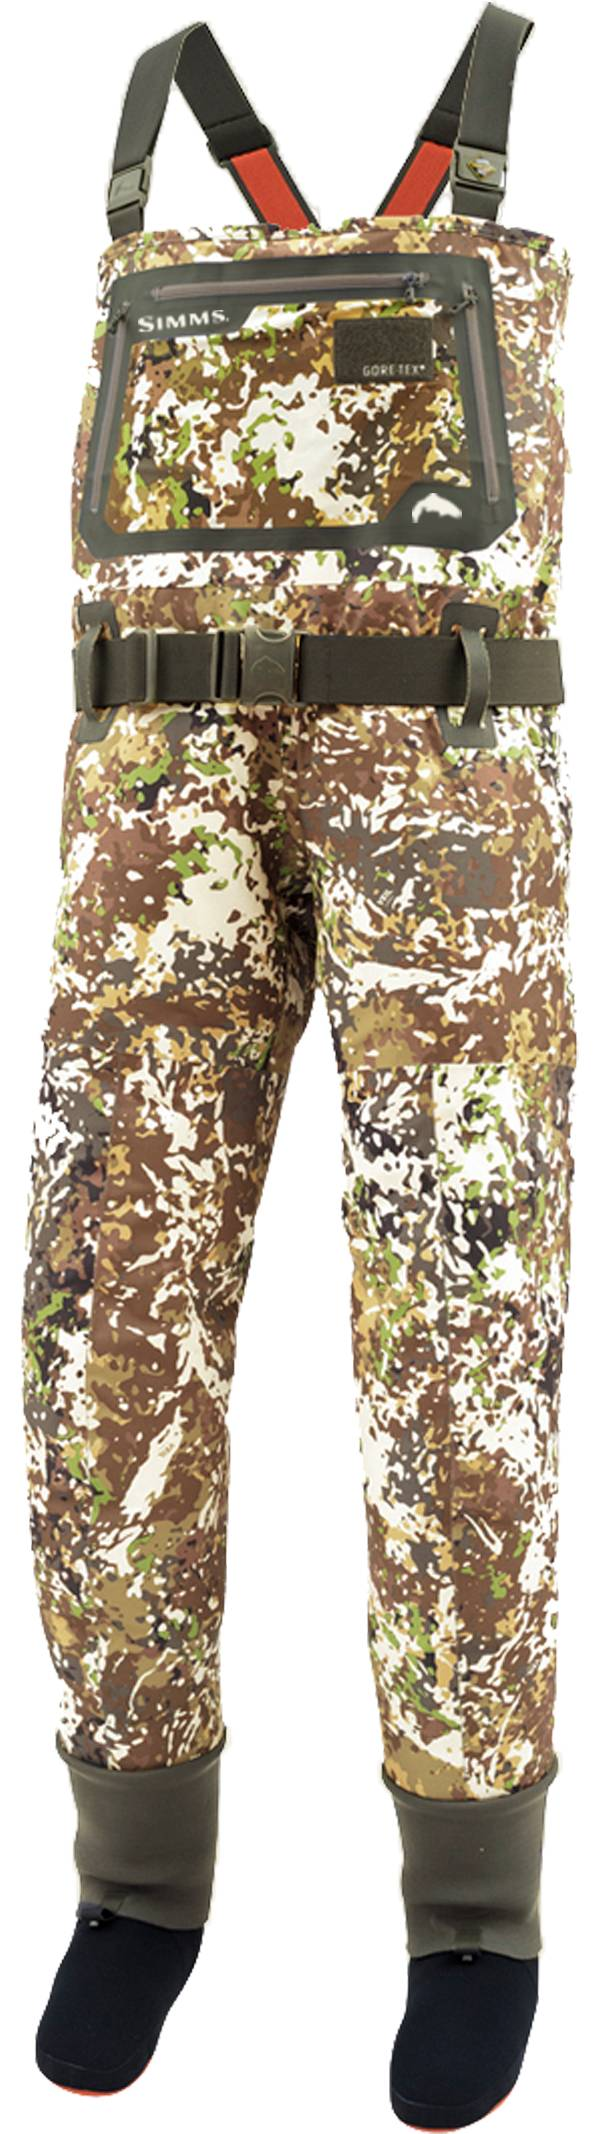 Simms G3 Guide Chest Waders product image